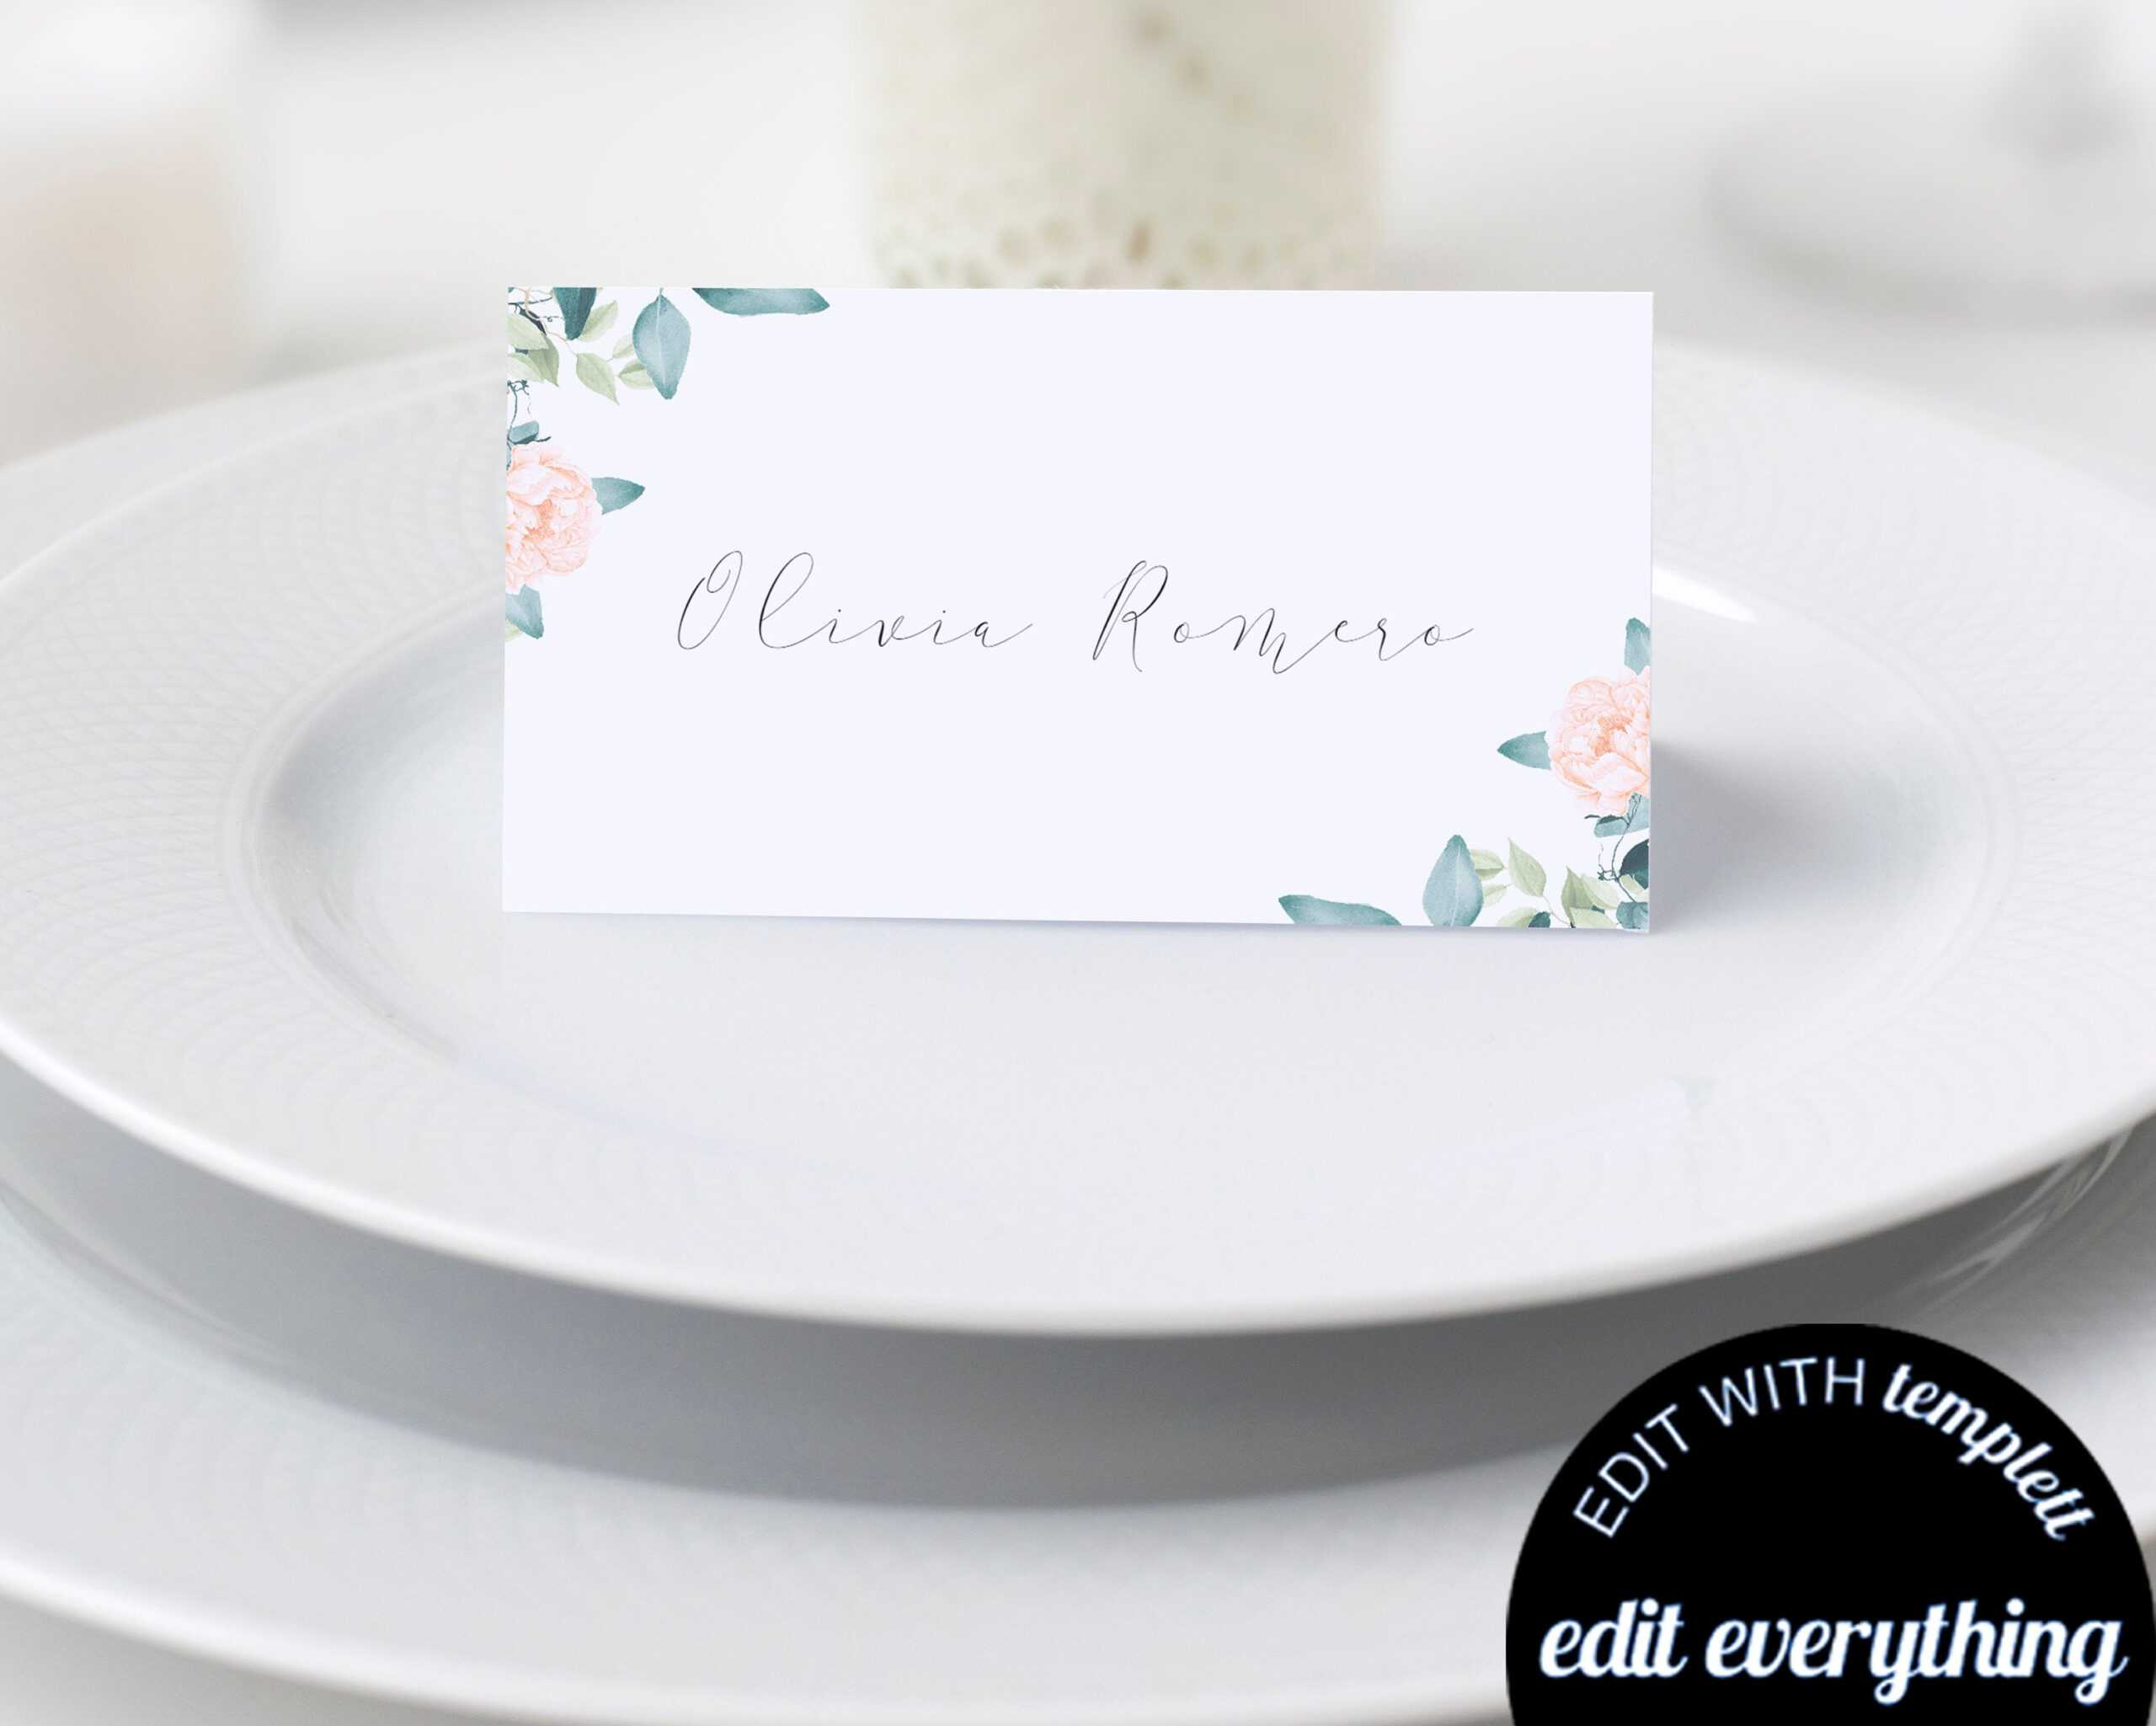 019 Template For Place Cards Il Fullxfull 1542140750 Dg3V In Place Card Template Free 6 Per Page